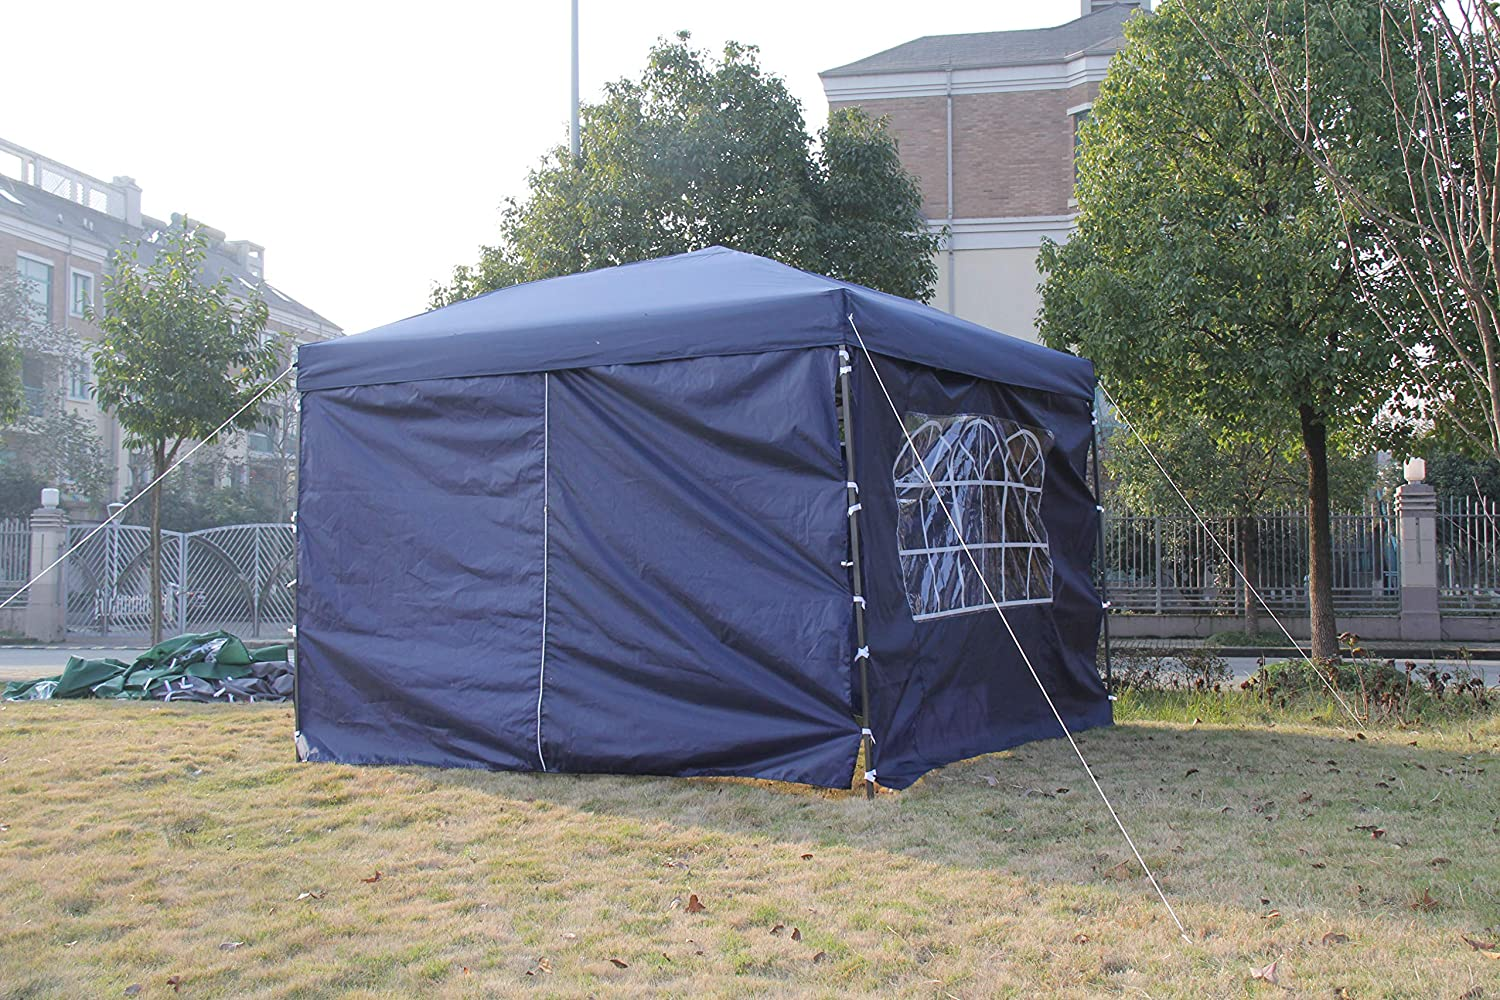 Blue Pop Up Garden Gazebo 3x3m Wedding Tent Marquee Canopy With Sidewall Bars and Sand Bags